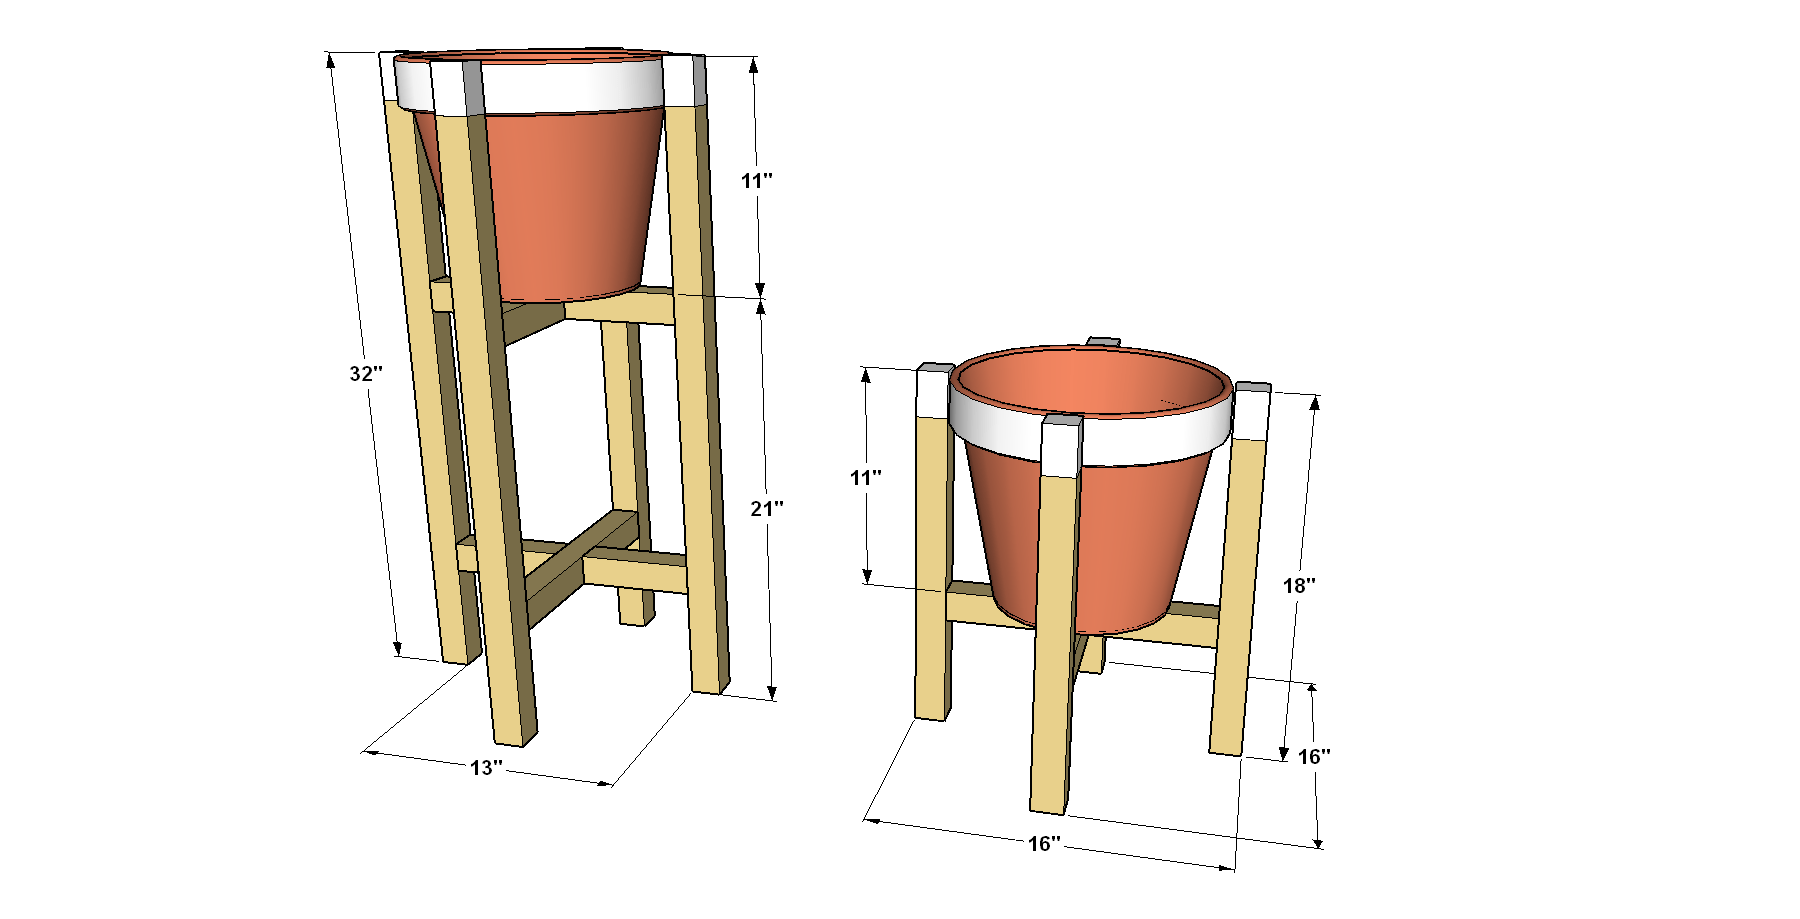 plant-stand-overall-with-dimensions